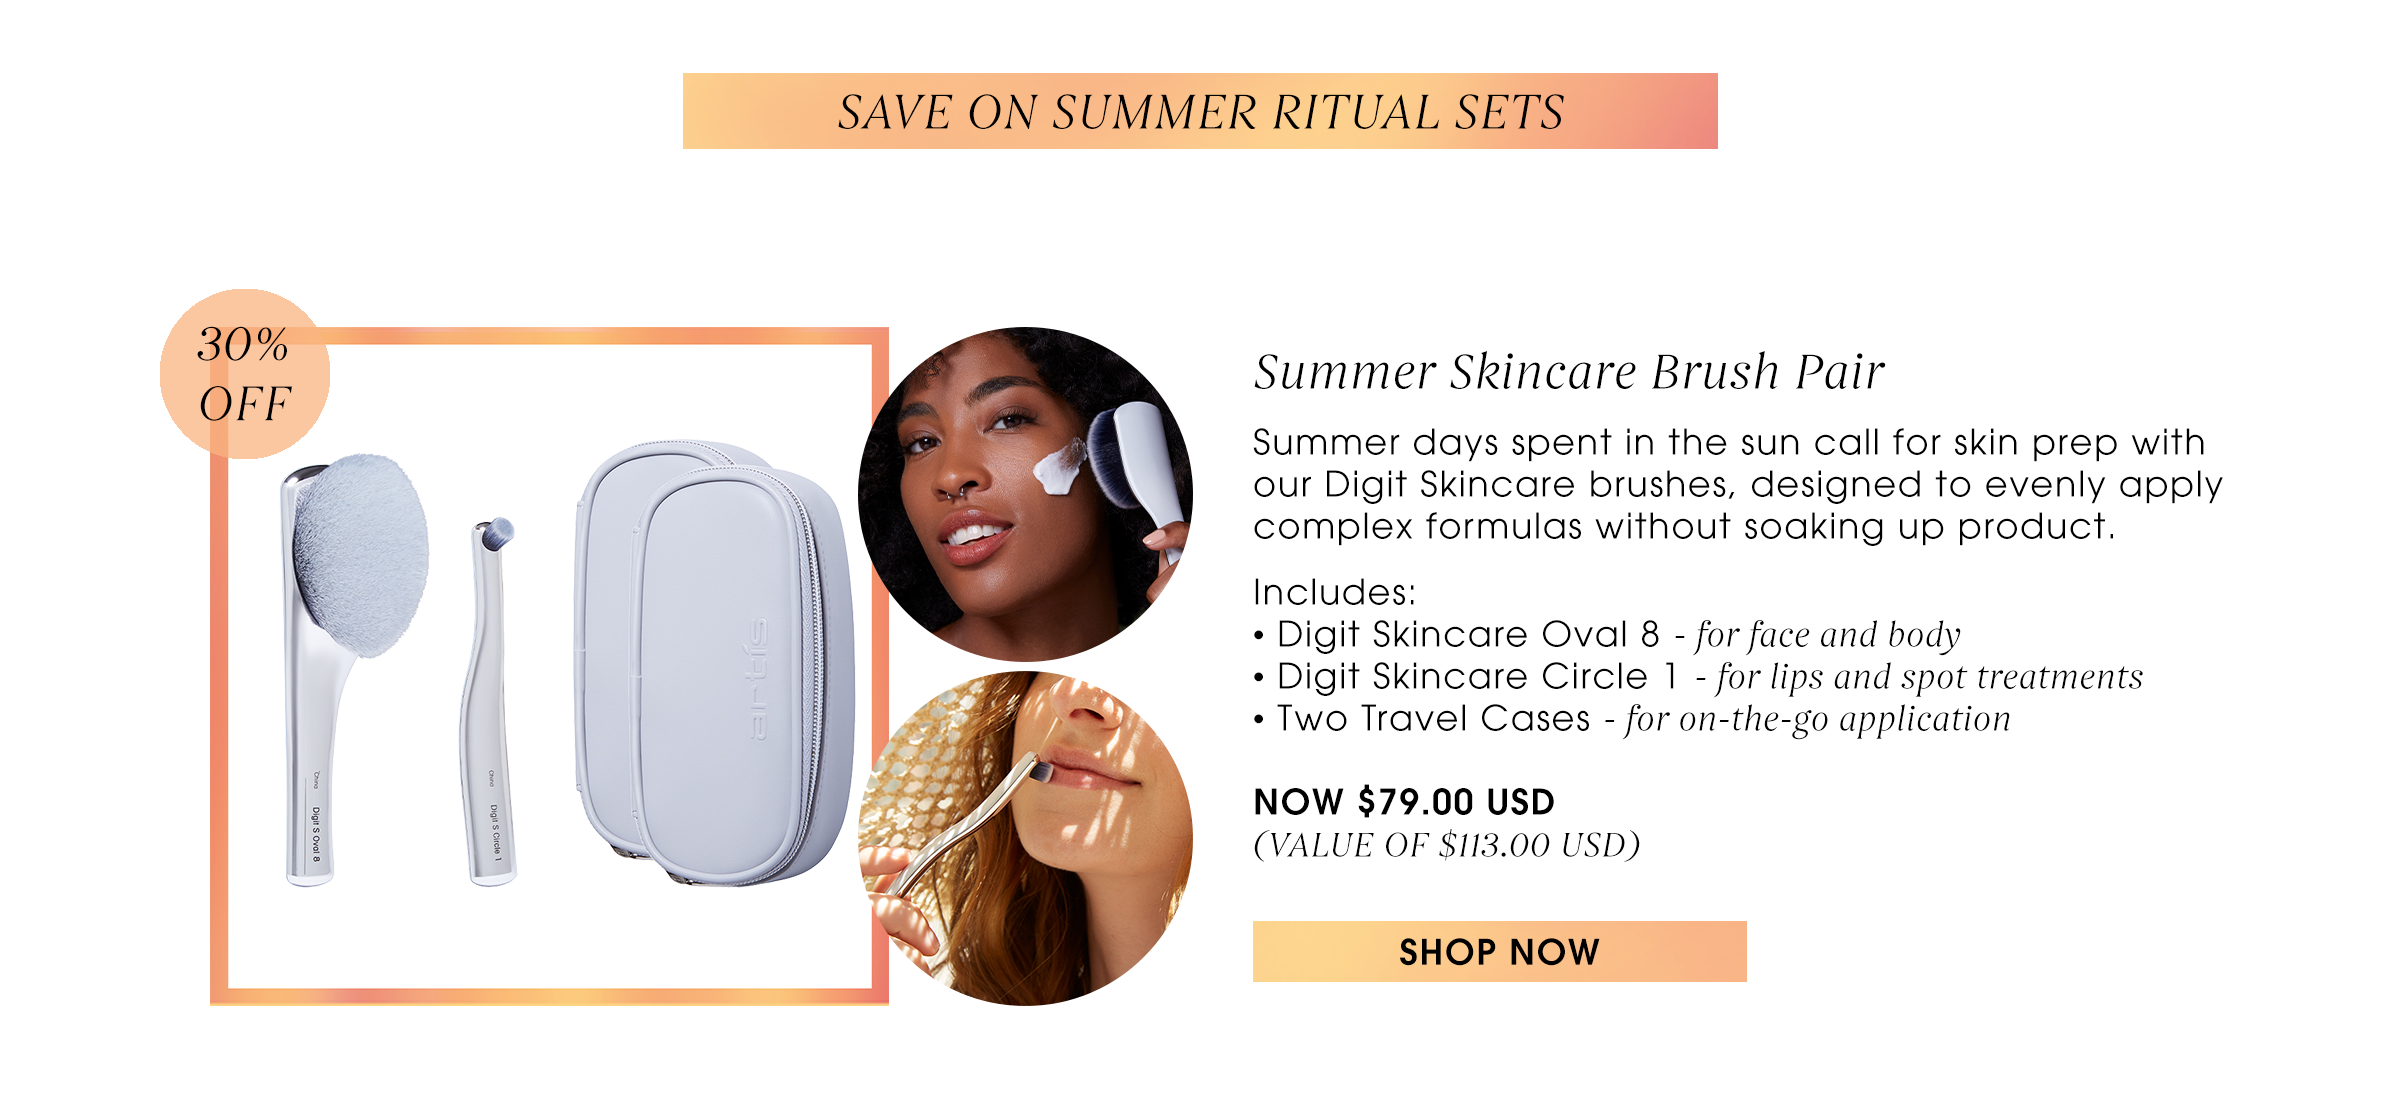 Save on Summer Ritual Sets. Summer Skincare Brush Pair. Summer days spent in the sun call for skin prep with our Digit Skincare brushes, designed to evenly apply complex formulas without soaking up product.   Includes: • Digit Skincare Oval 8 - for face and body  • Digit Skincare Circle 1 - for lips and spot treatments • Two Travel Cases - for on-the-go application  NOW $79.00 USD (VALUE OF $113.00 USD) Shop now.